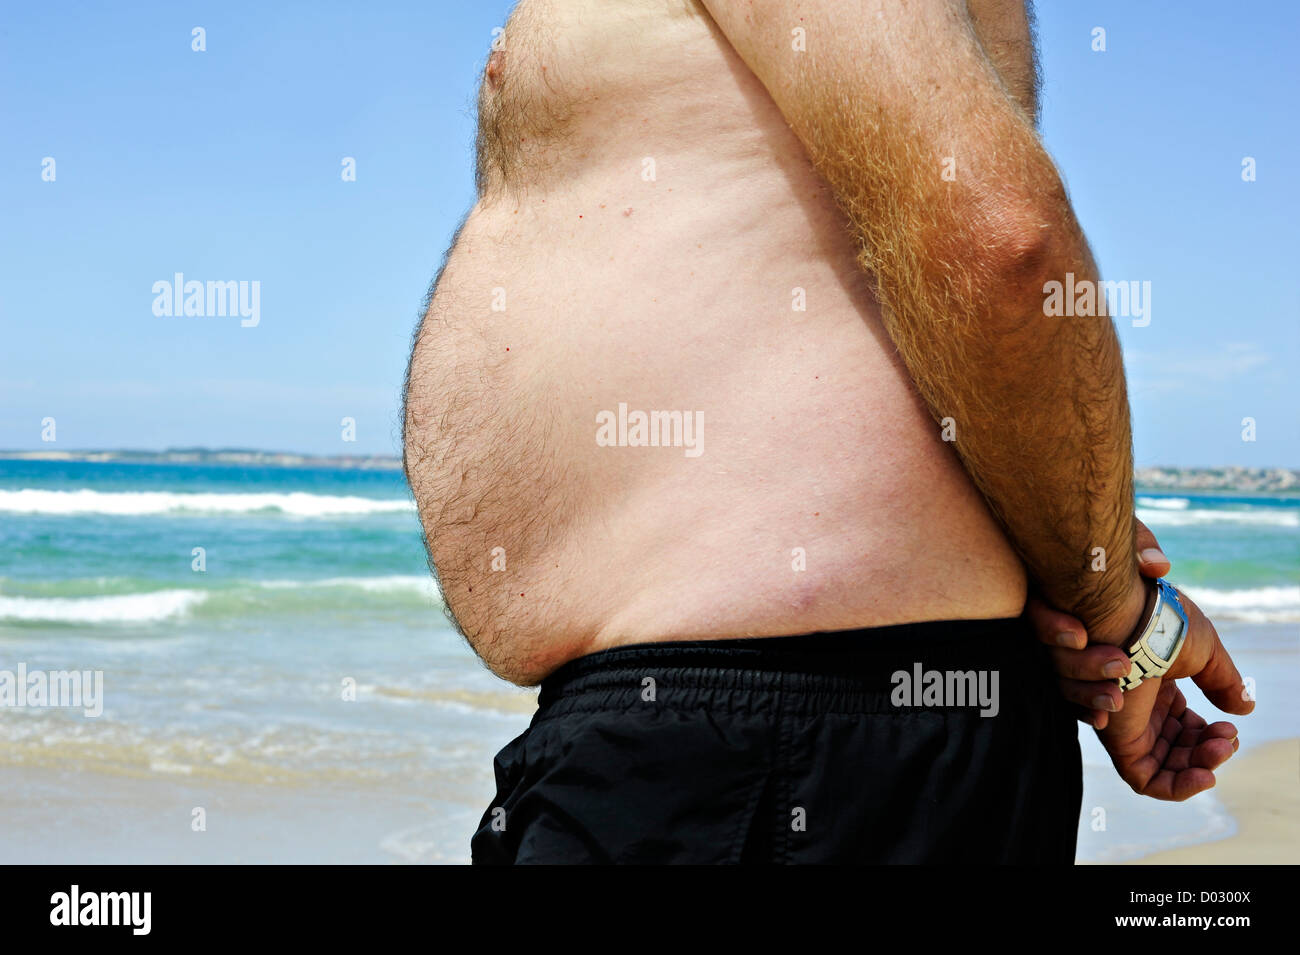 Belly Fat Man Stock Photos & Belly Fat Man Stock Images ...